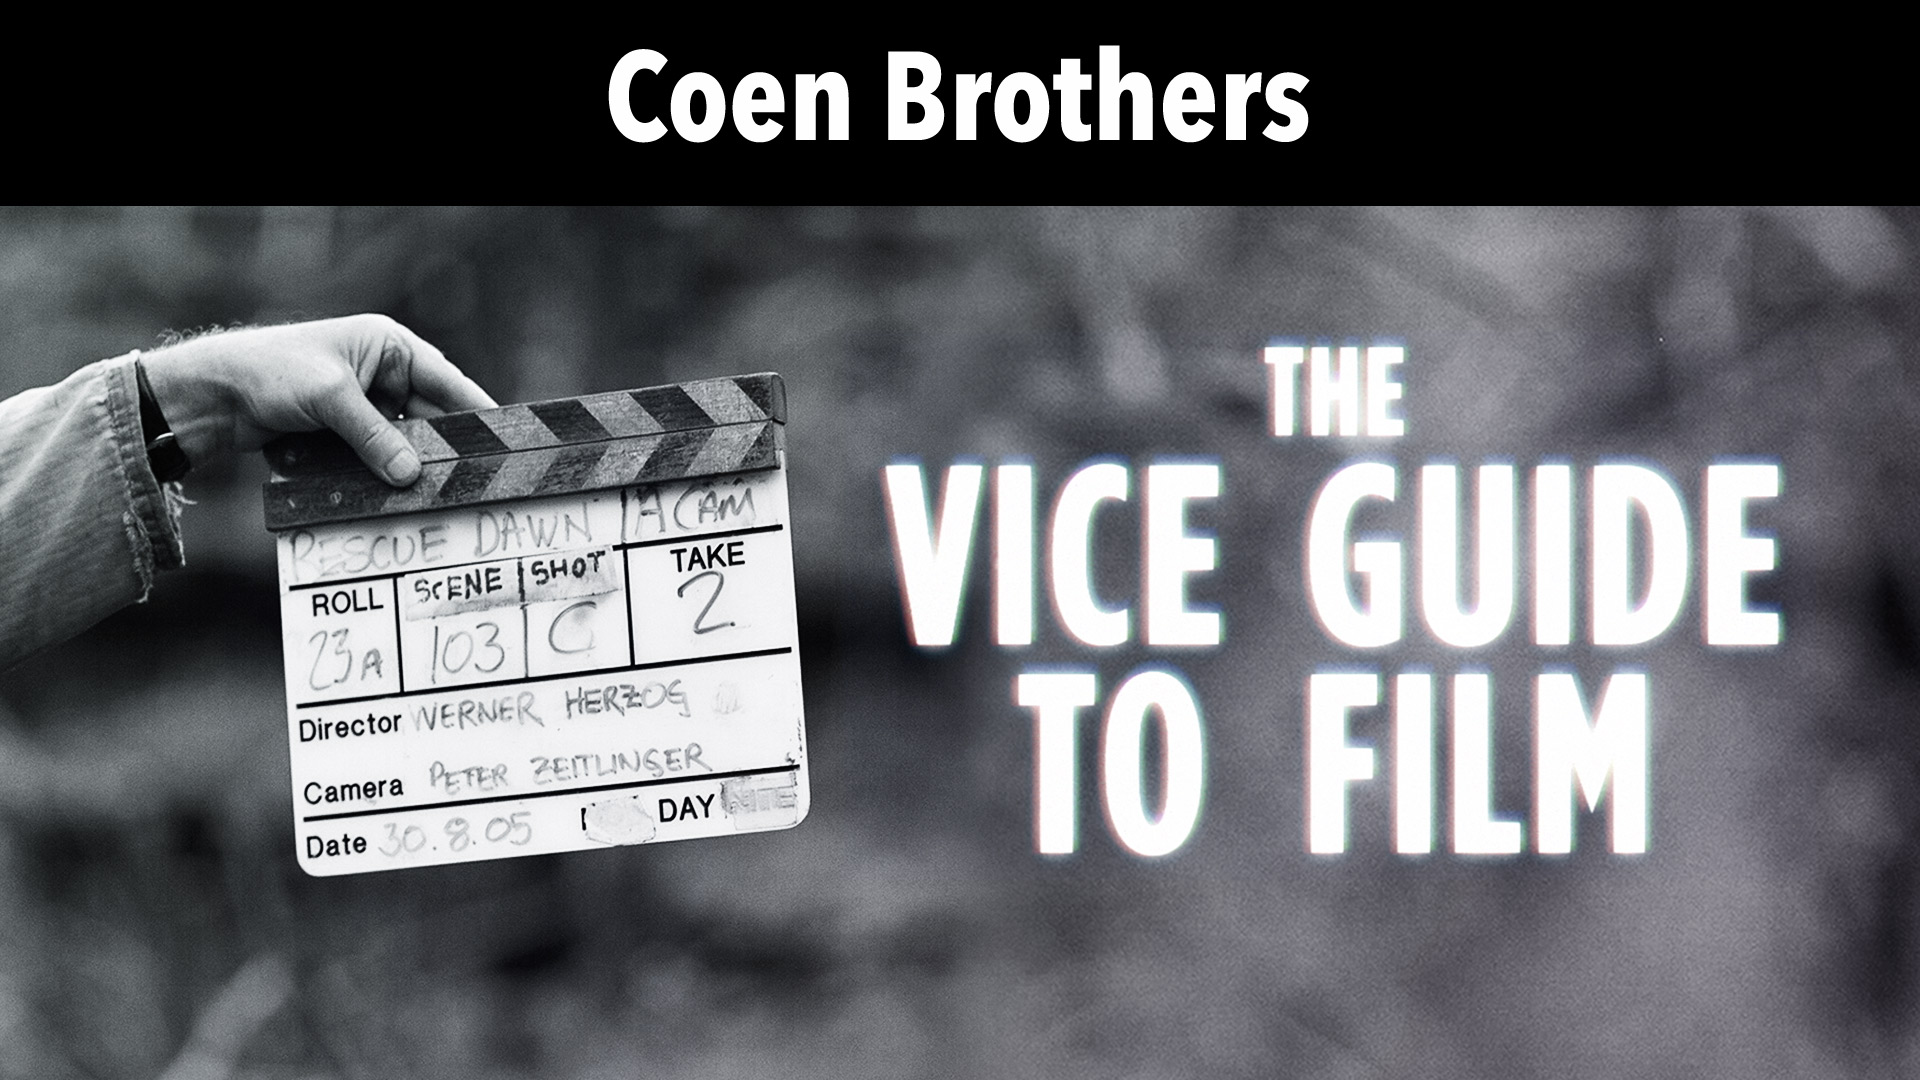 Coen Brothers: Vice Guide To Film